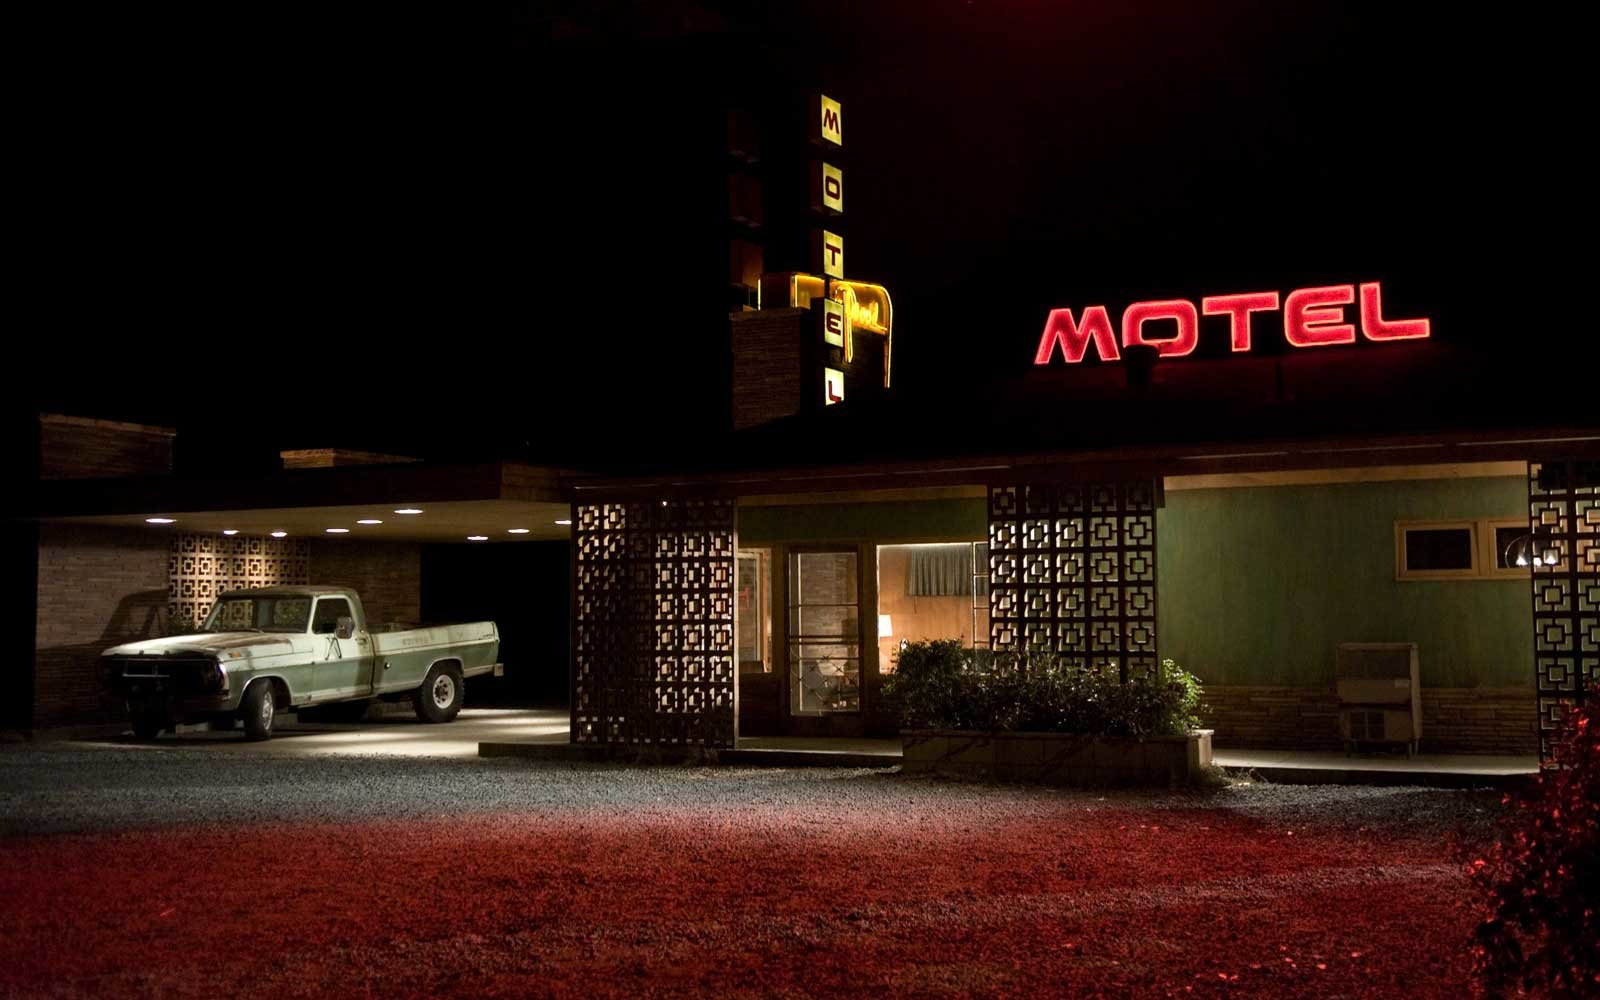 Exterior of motel from 2007 film Vacancy by director Nimrod Antal